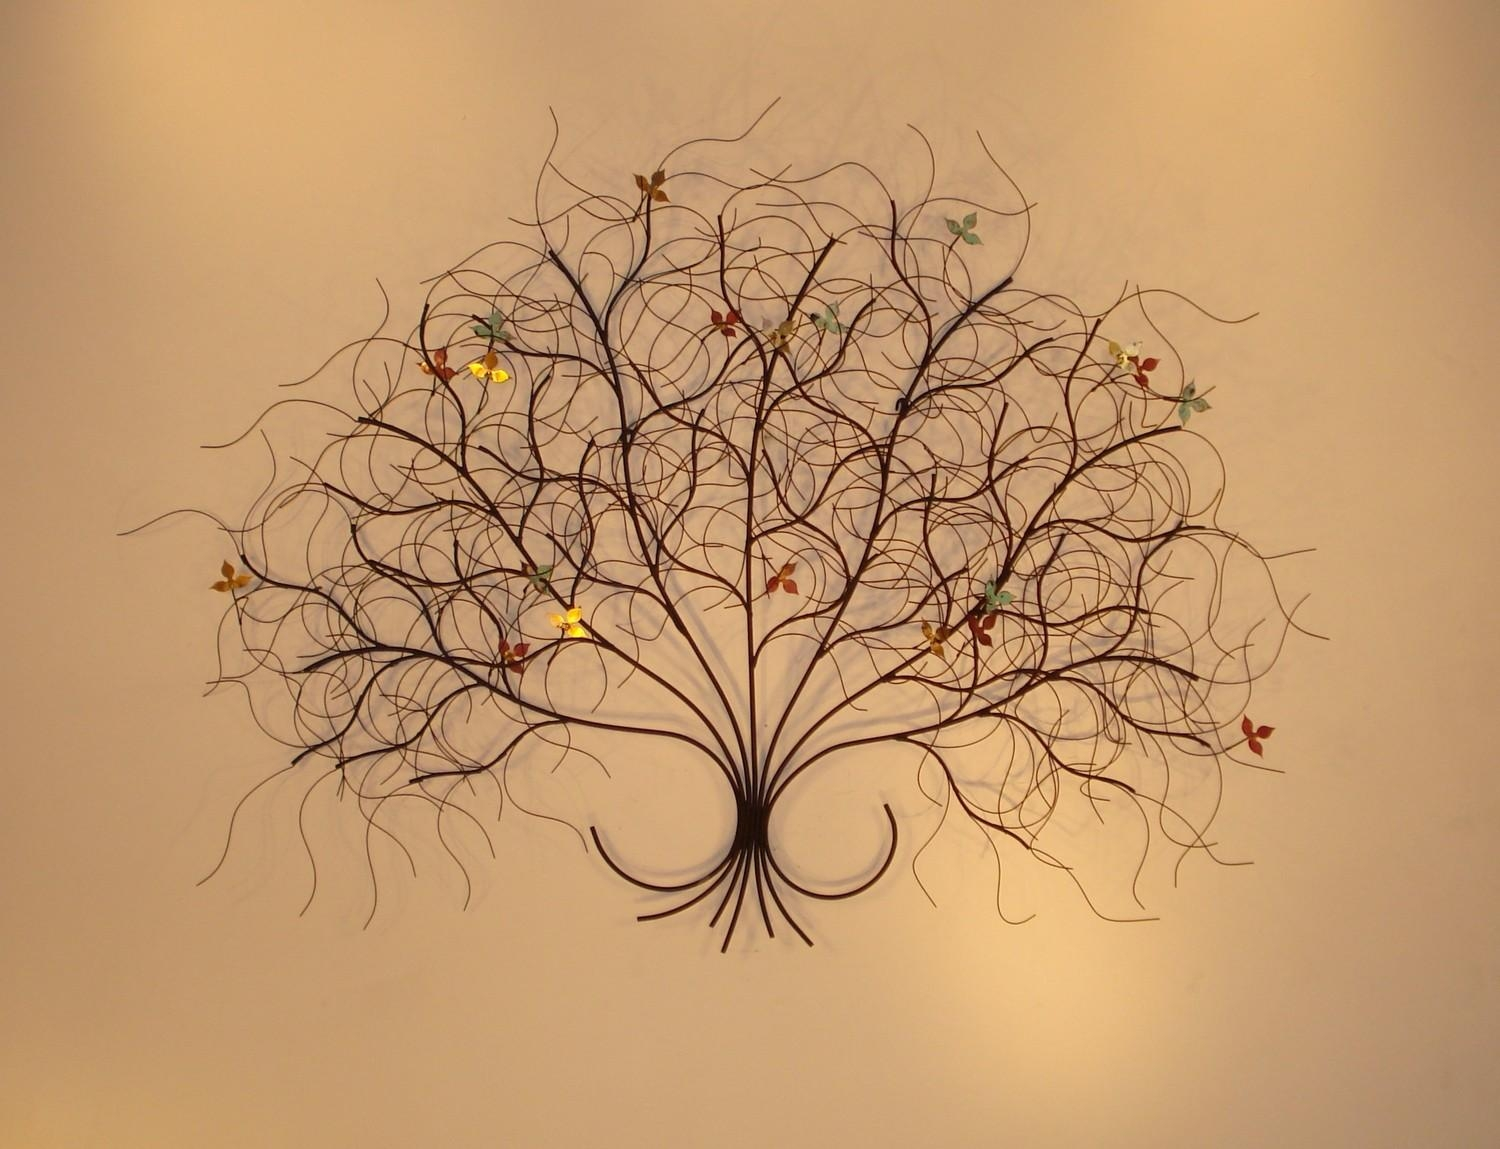 Metal Wall Sculptures And Wall Art – Branches | Gurtan Designs With Regard To Tree Wall Art Sculpture (View 19 of 20)